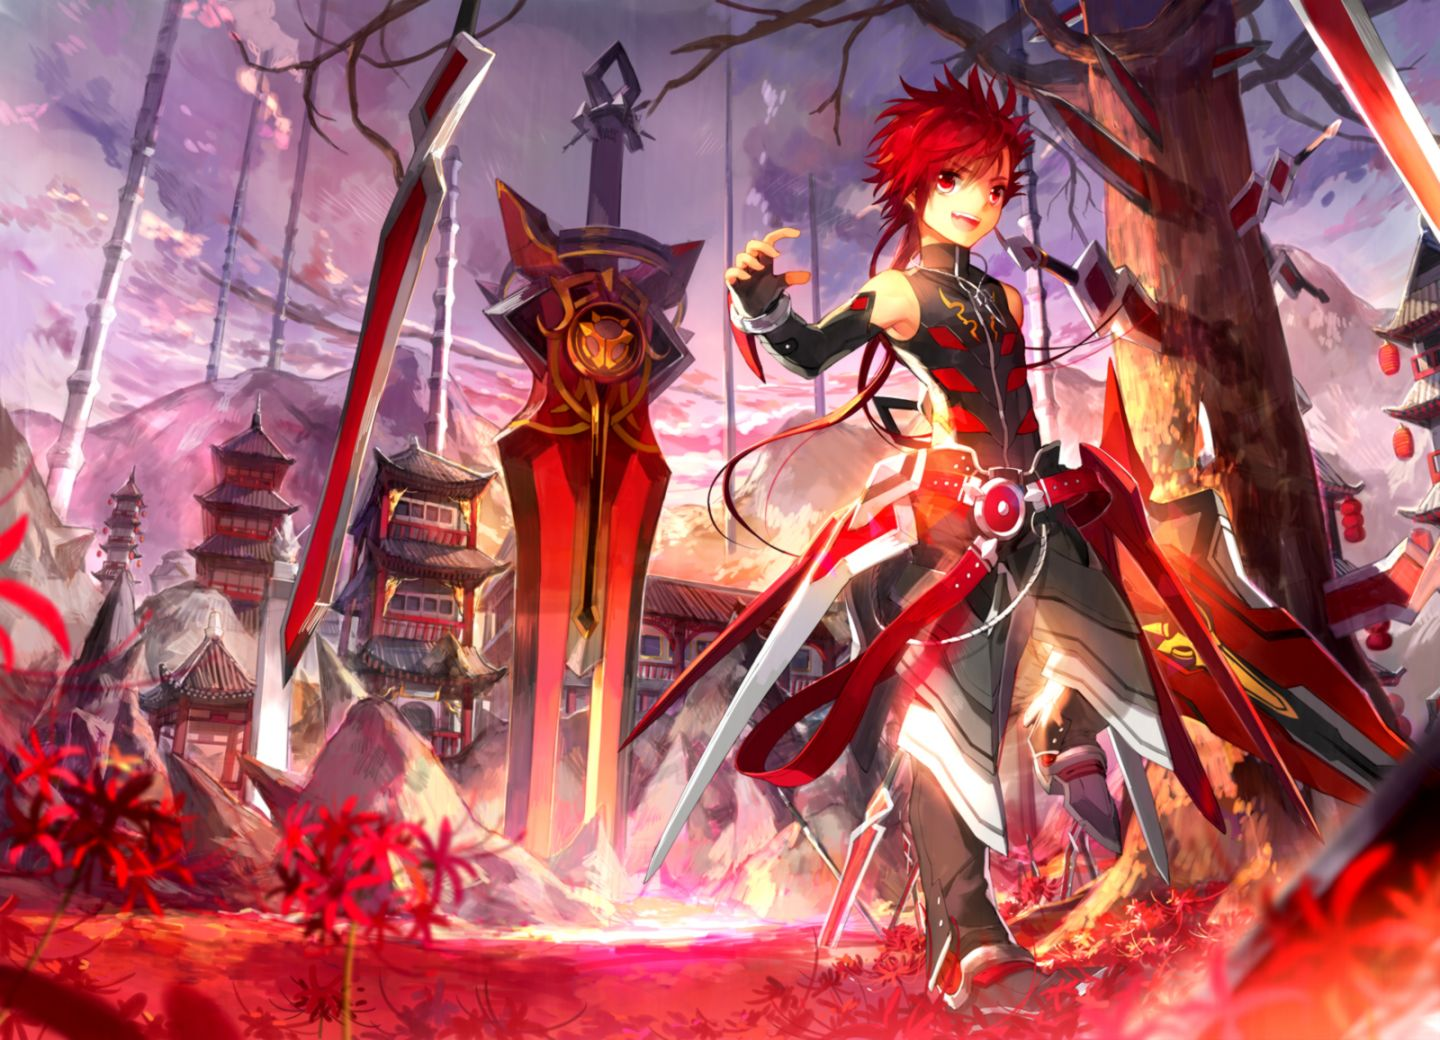 All About Hd Wallpaper Anime Wallpaper High Definition